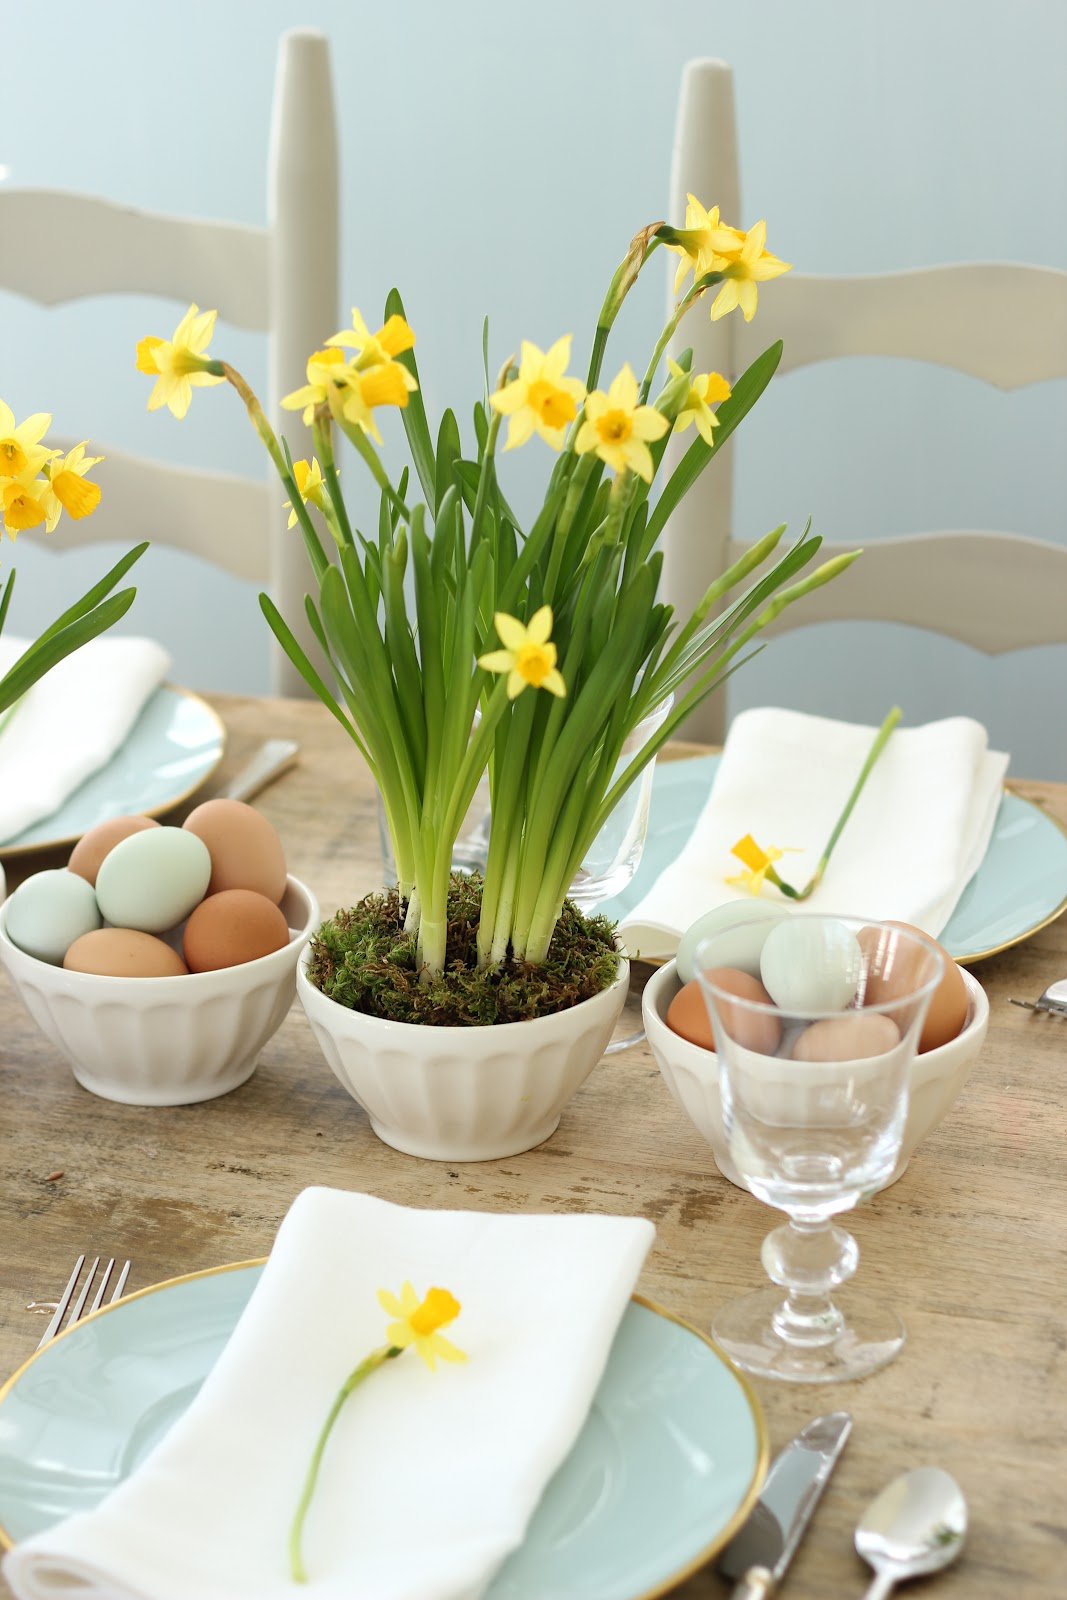 Jenny steffens hobick easter brunch ideas menu